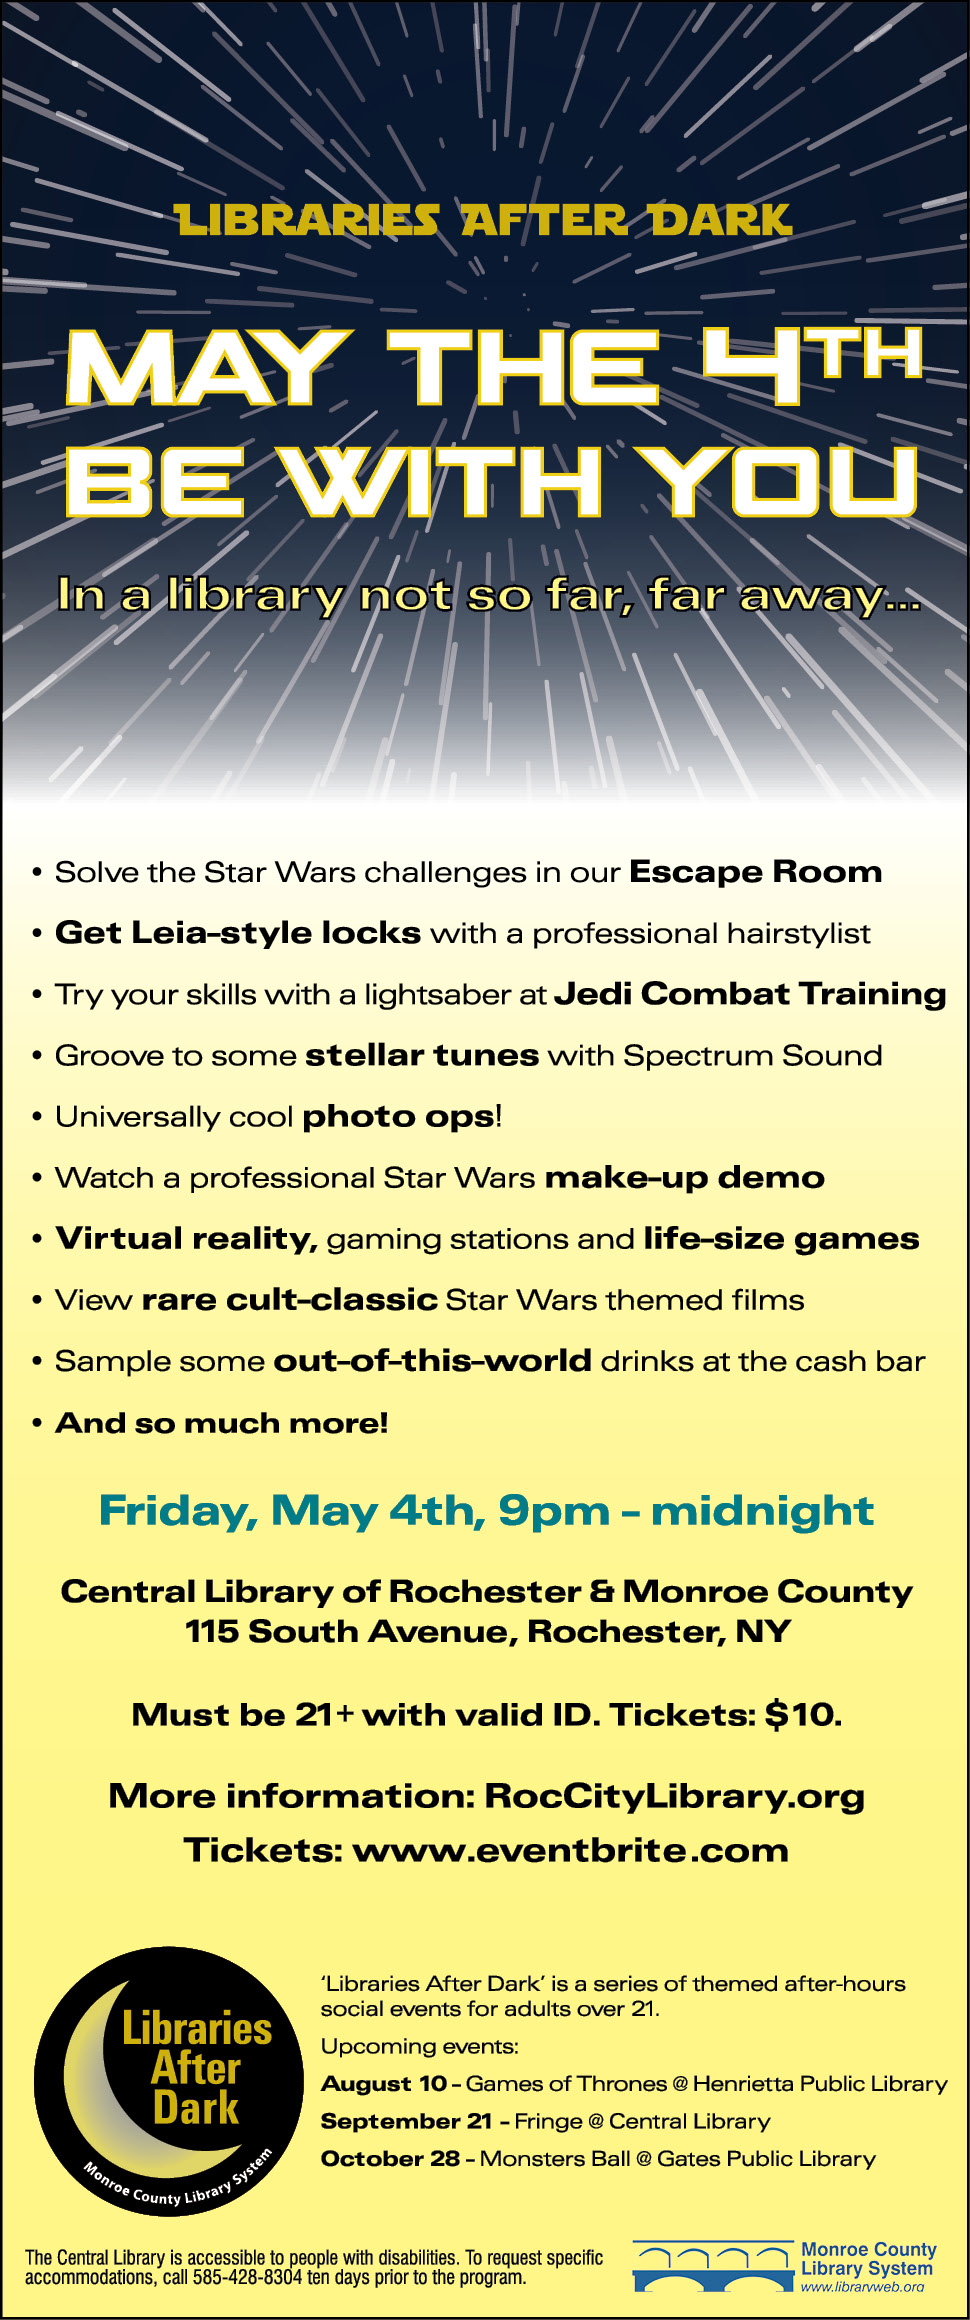 Libraries After Dark -- 'May the 4th Be With You' Star Wars themed social event